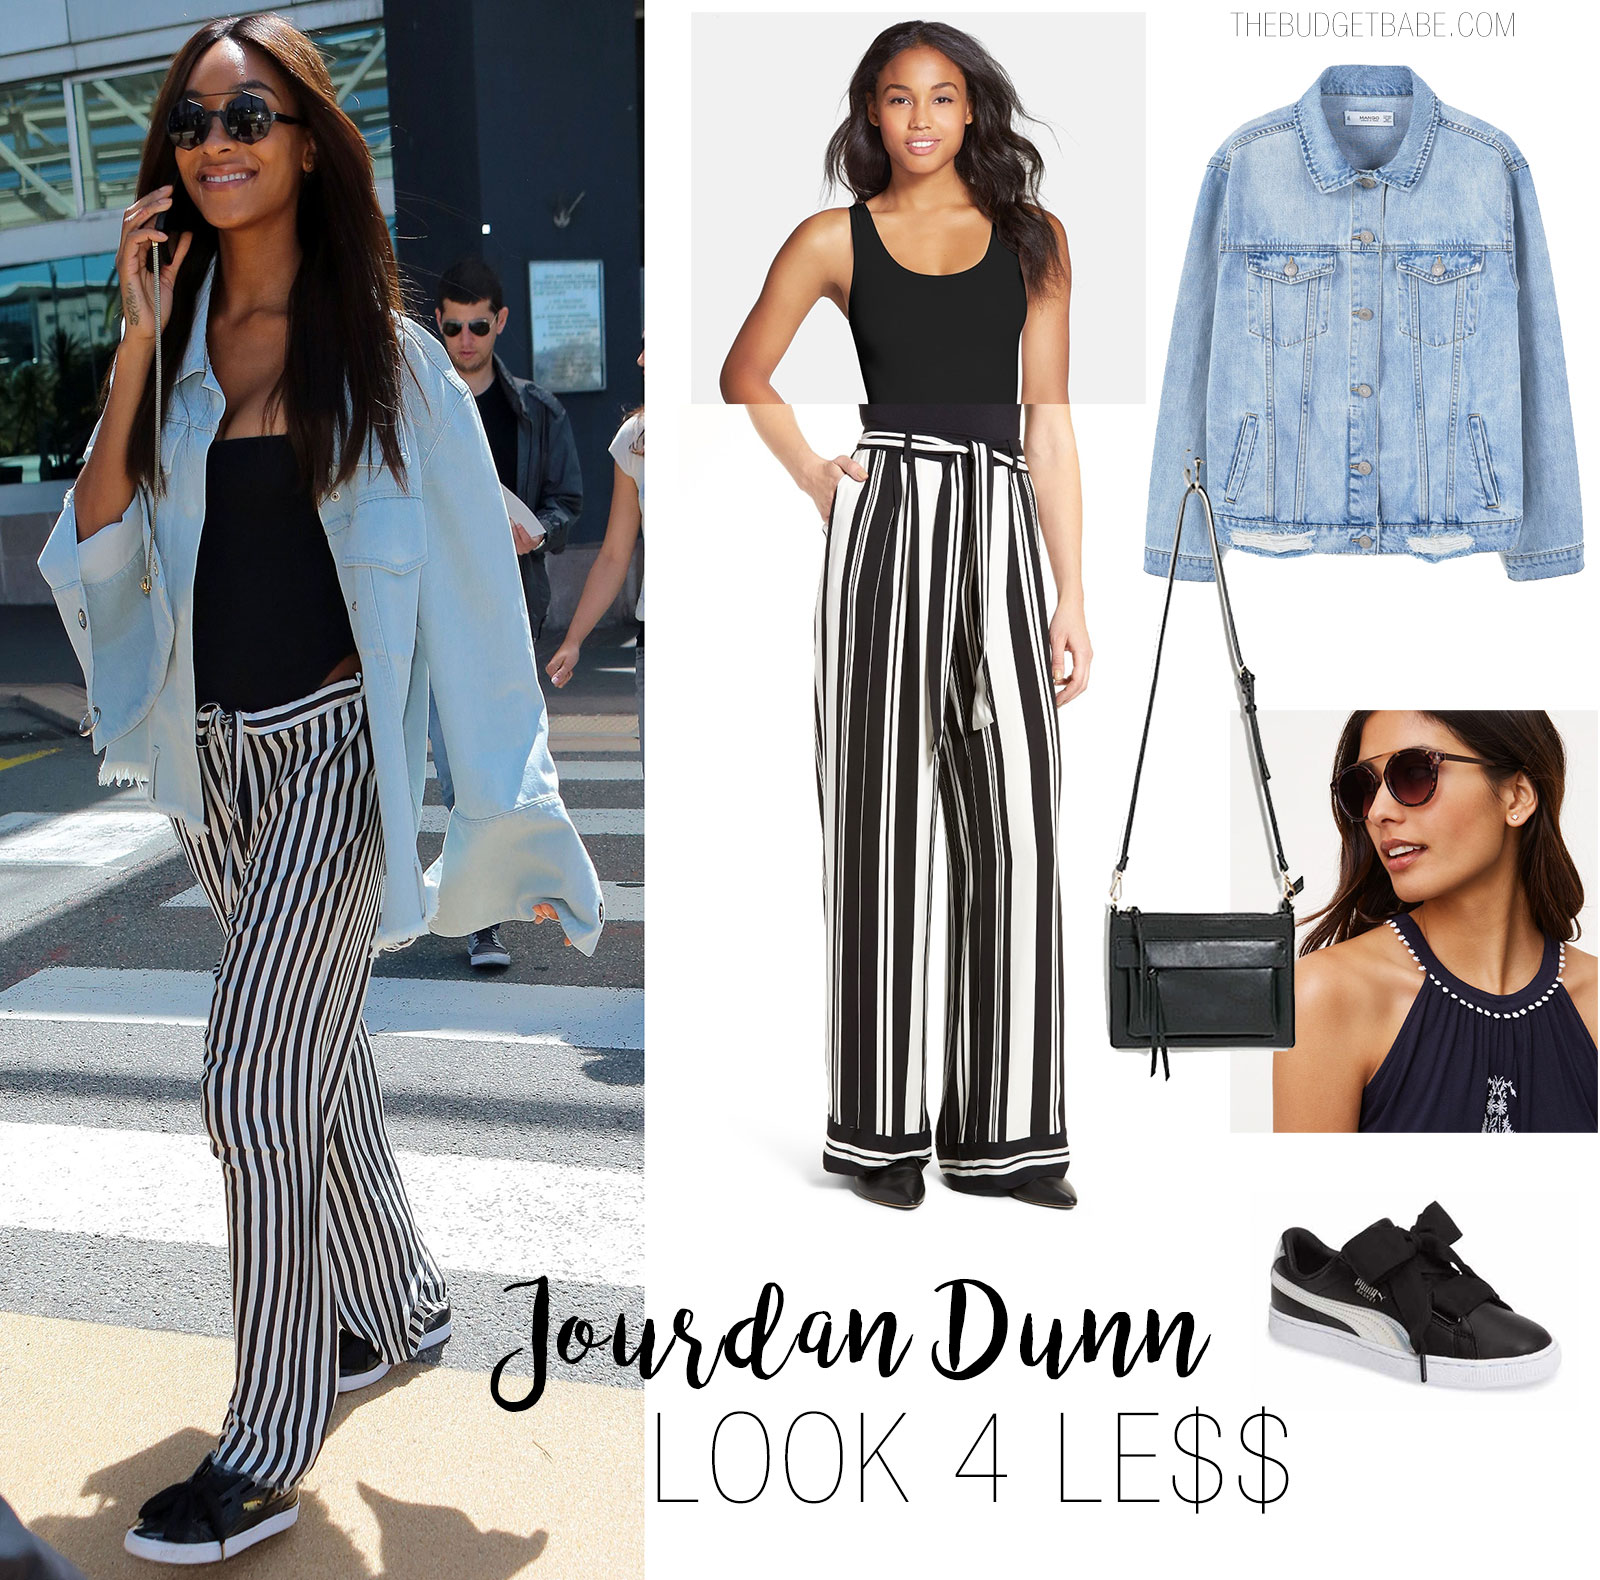 56bb1f0dd64f9 ... Off-the-Shoulder Top and Fringe Jeans Look for Less Jourdan Dunn wears  vertical stripe pants with an oversized denim jacket and sneakers.